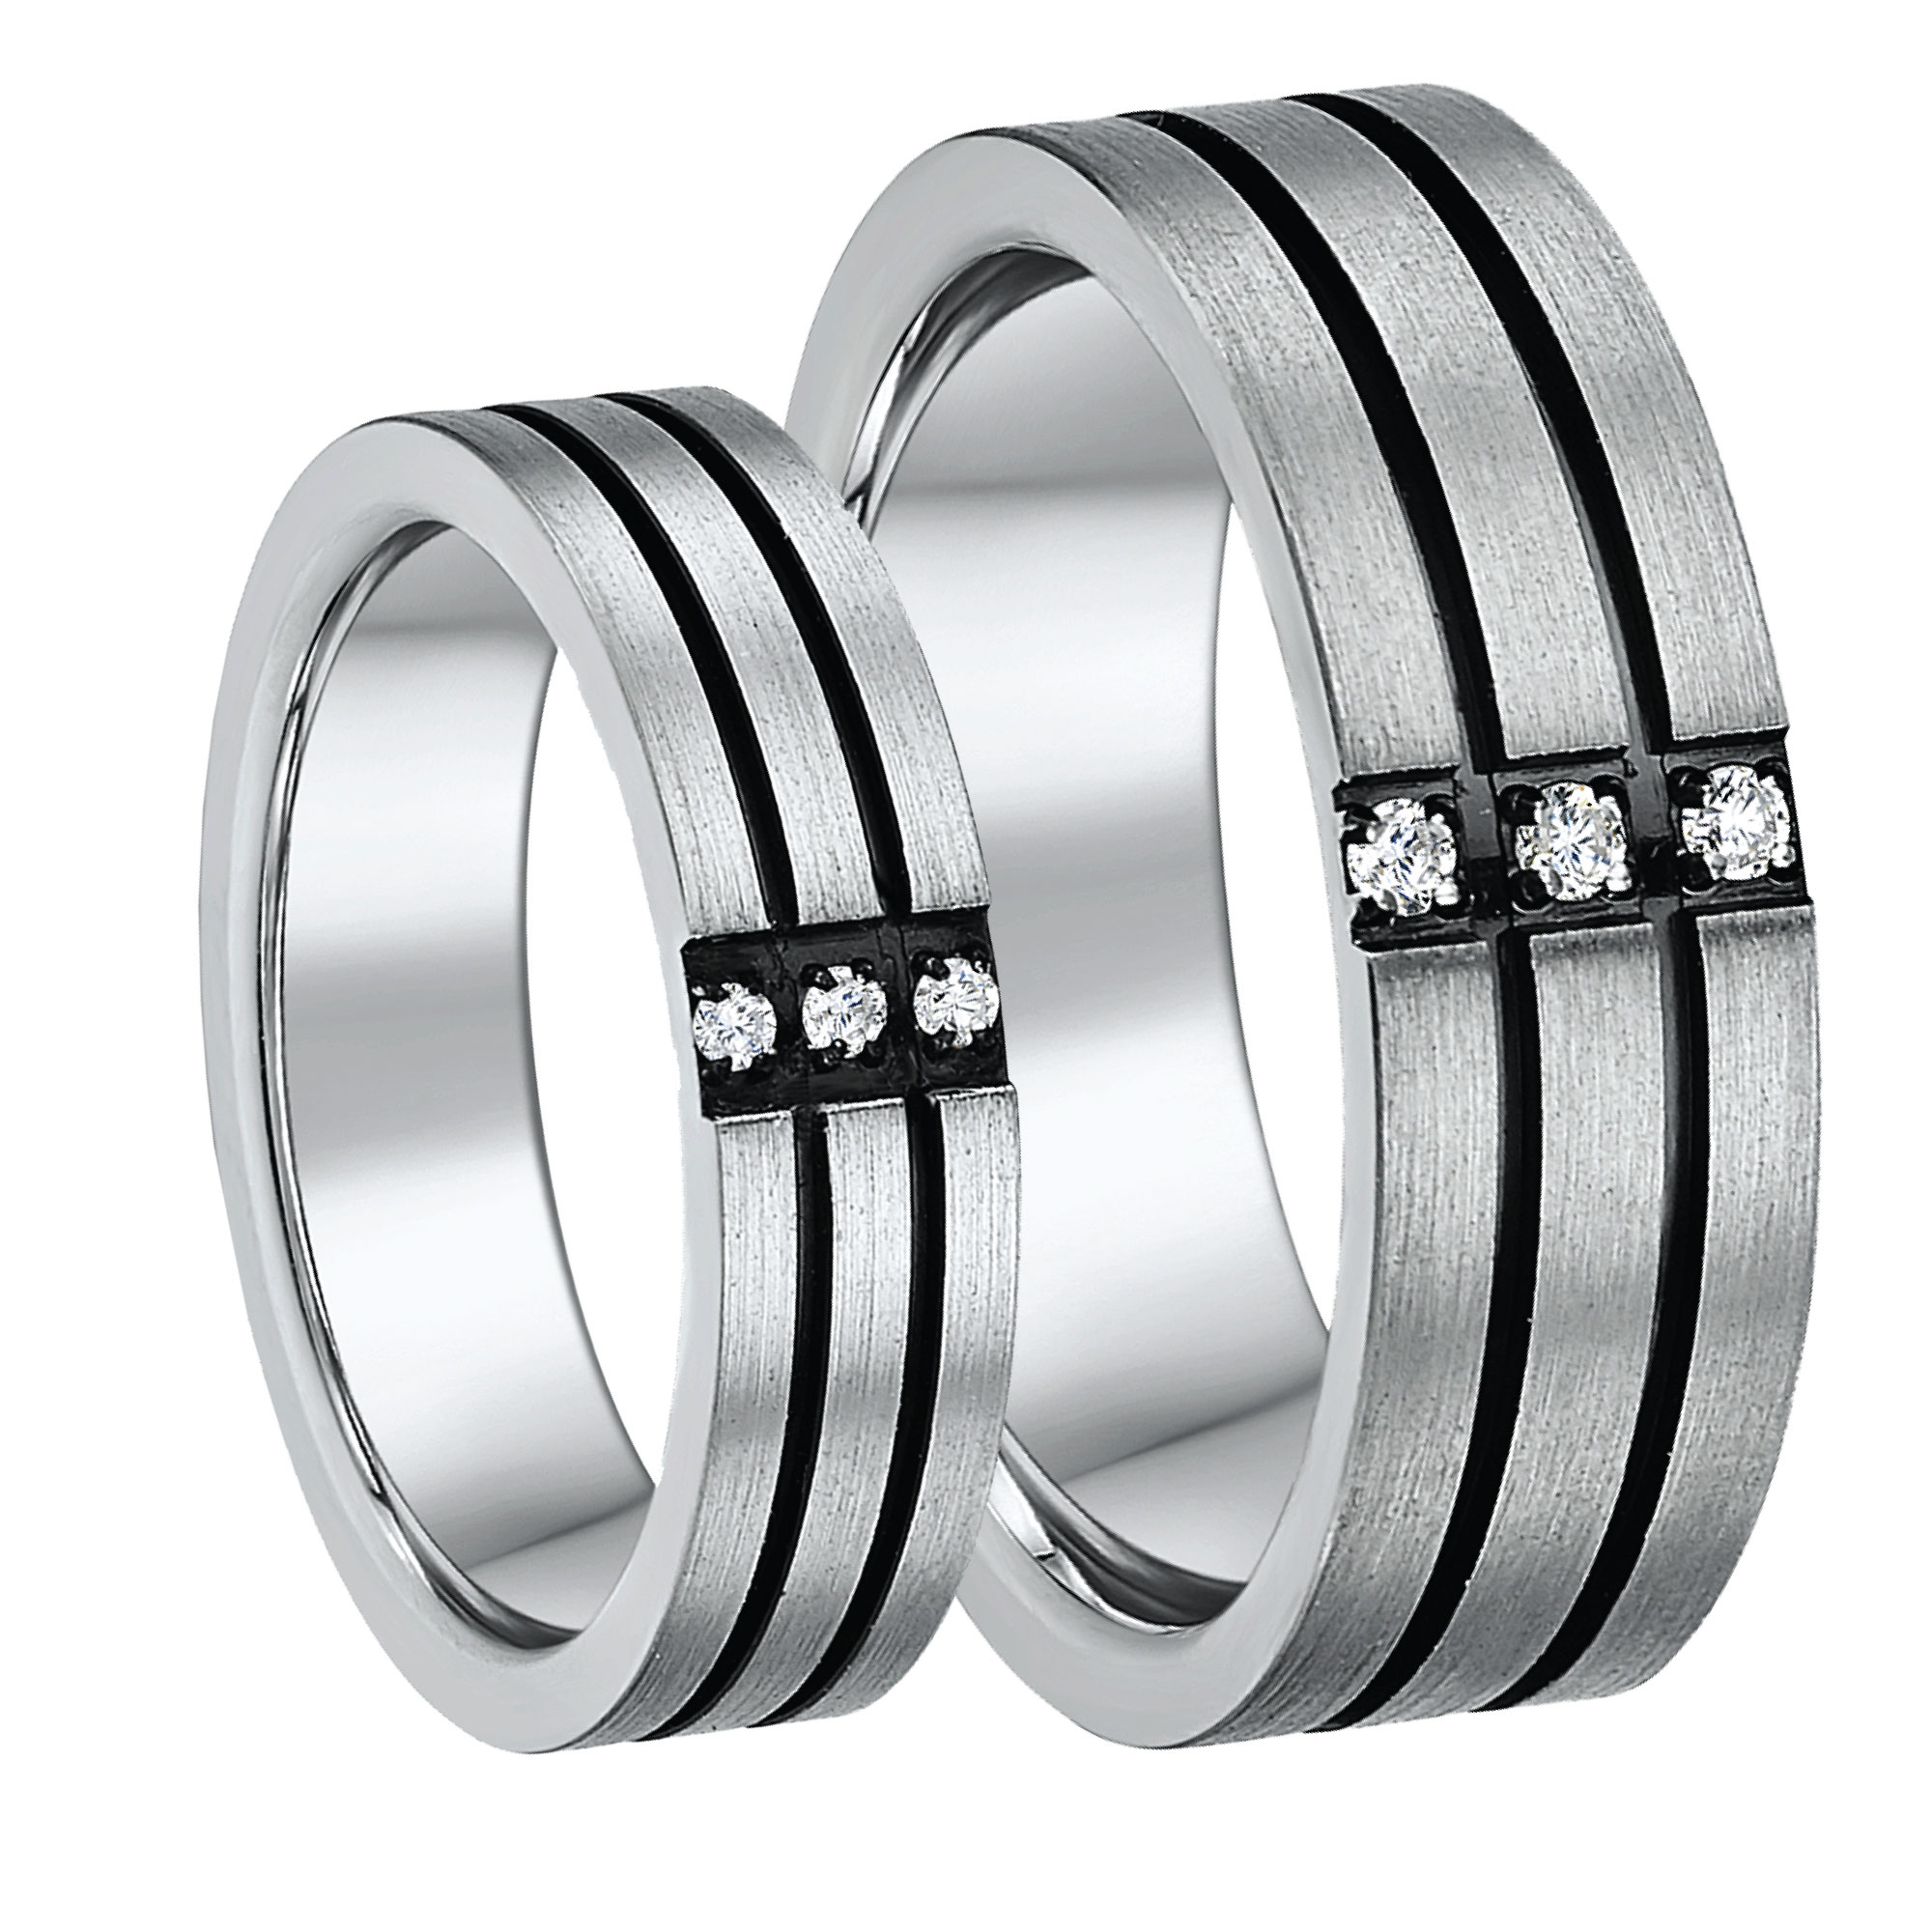 Inspirational His and Hers Black Diamond Wedding Ring Sets